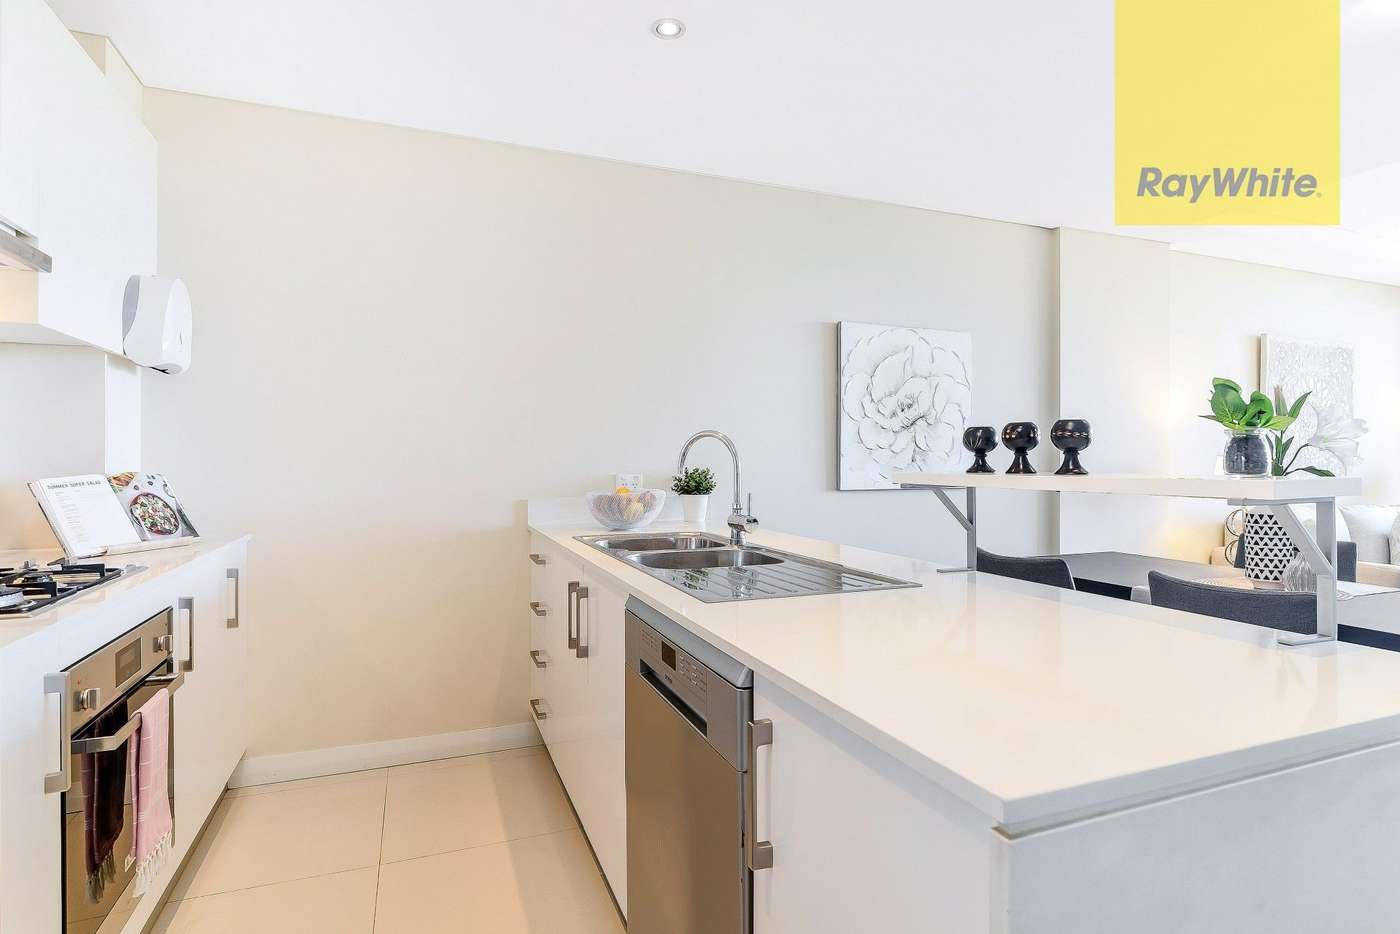 Sixth view of Homely apartment listing, 88/459-463 Church Street, Parramatta NSW 2150